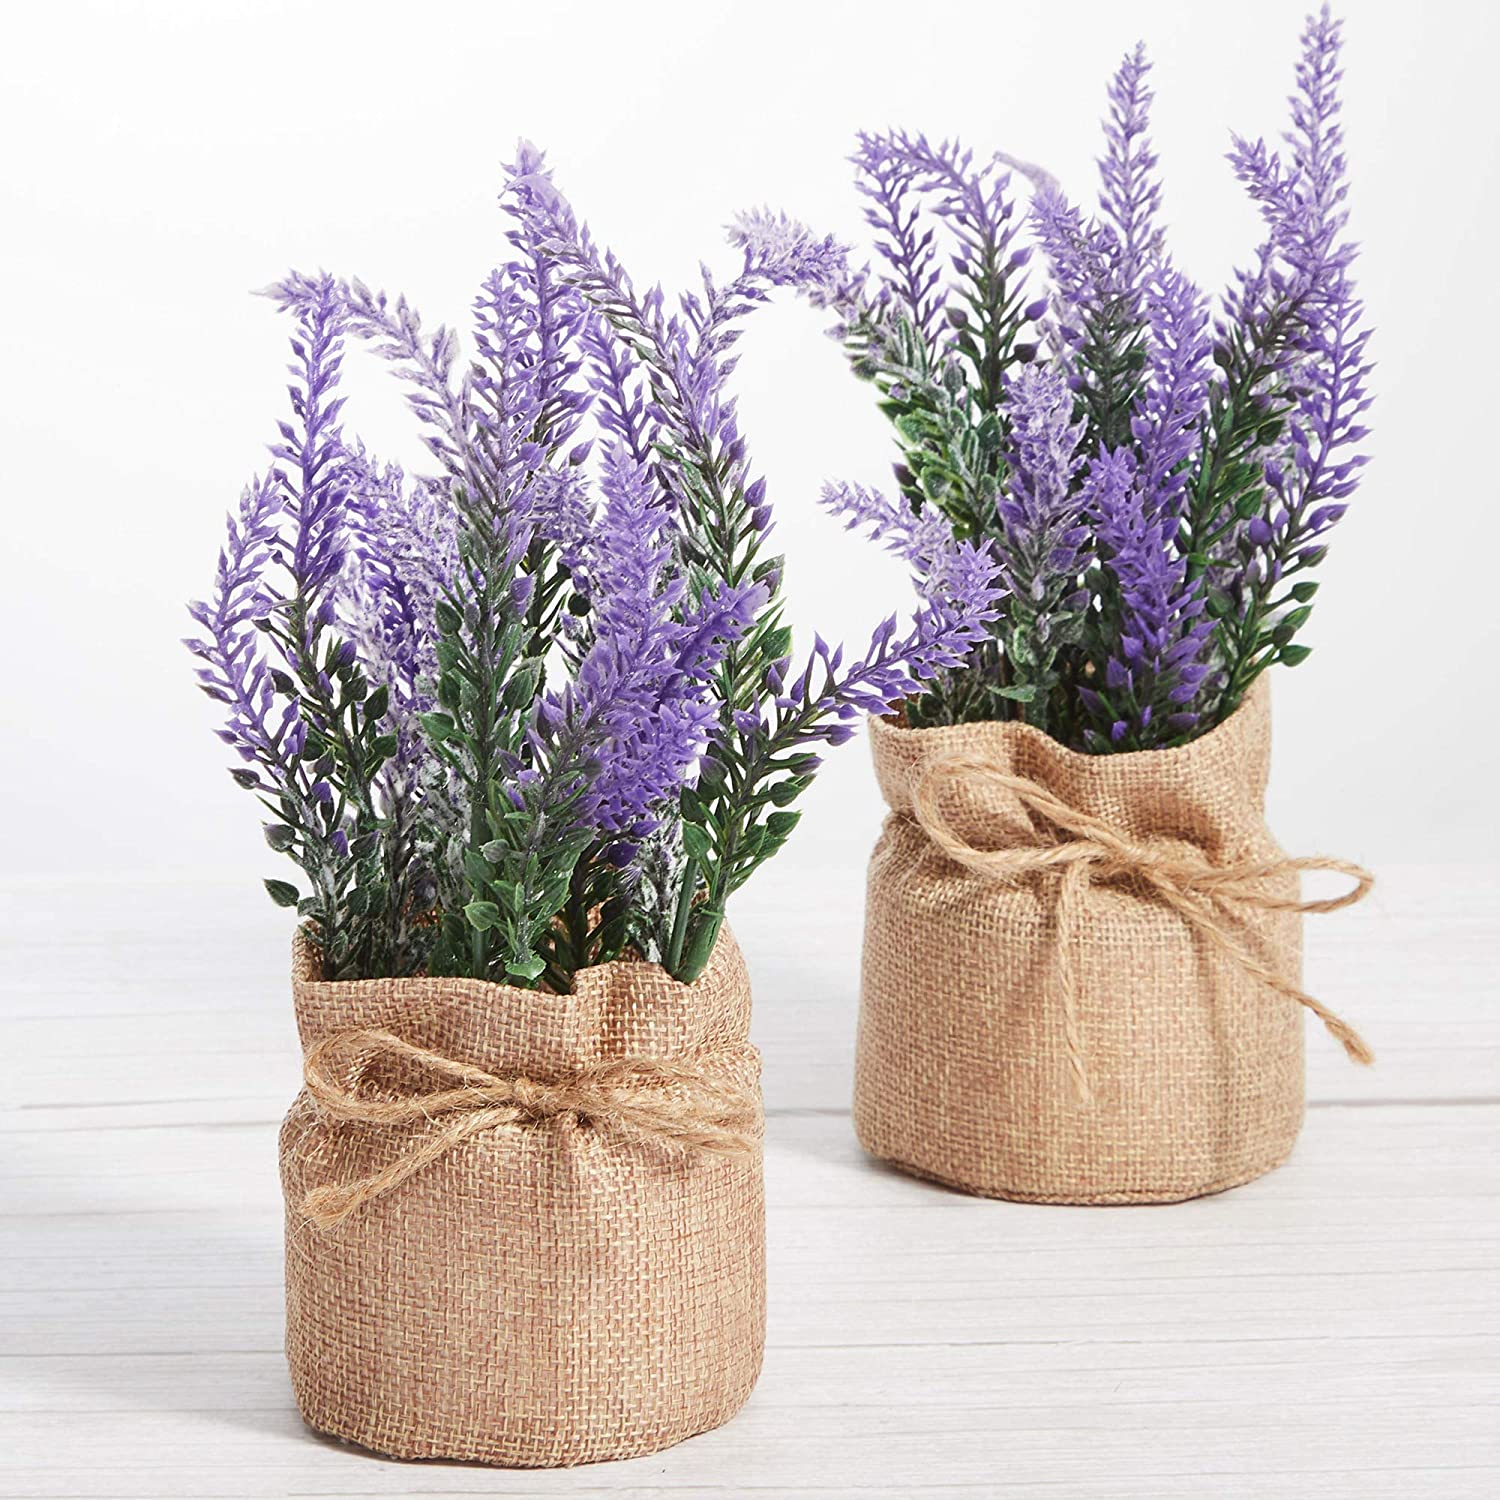 LUEUR Artificial Lavender Inventory cleanup selling sale Potted Flowers Fake Pack 2 Lav Max 86% OFF